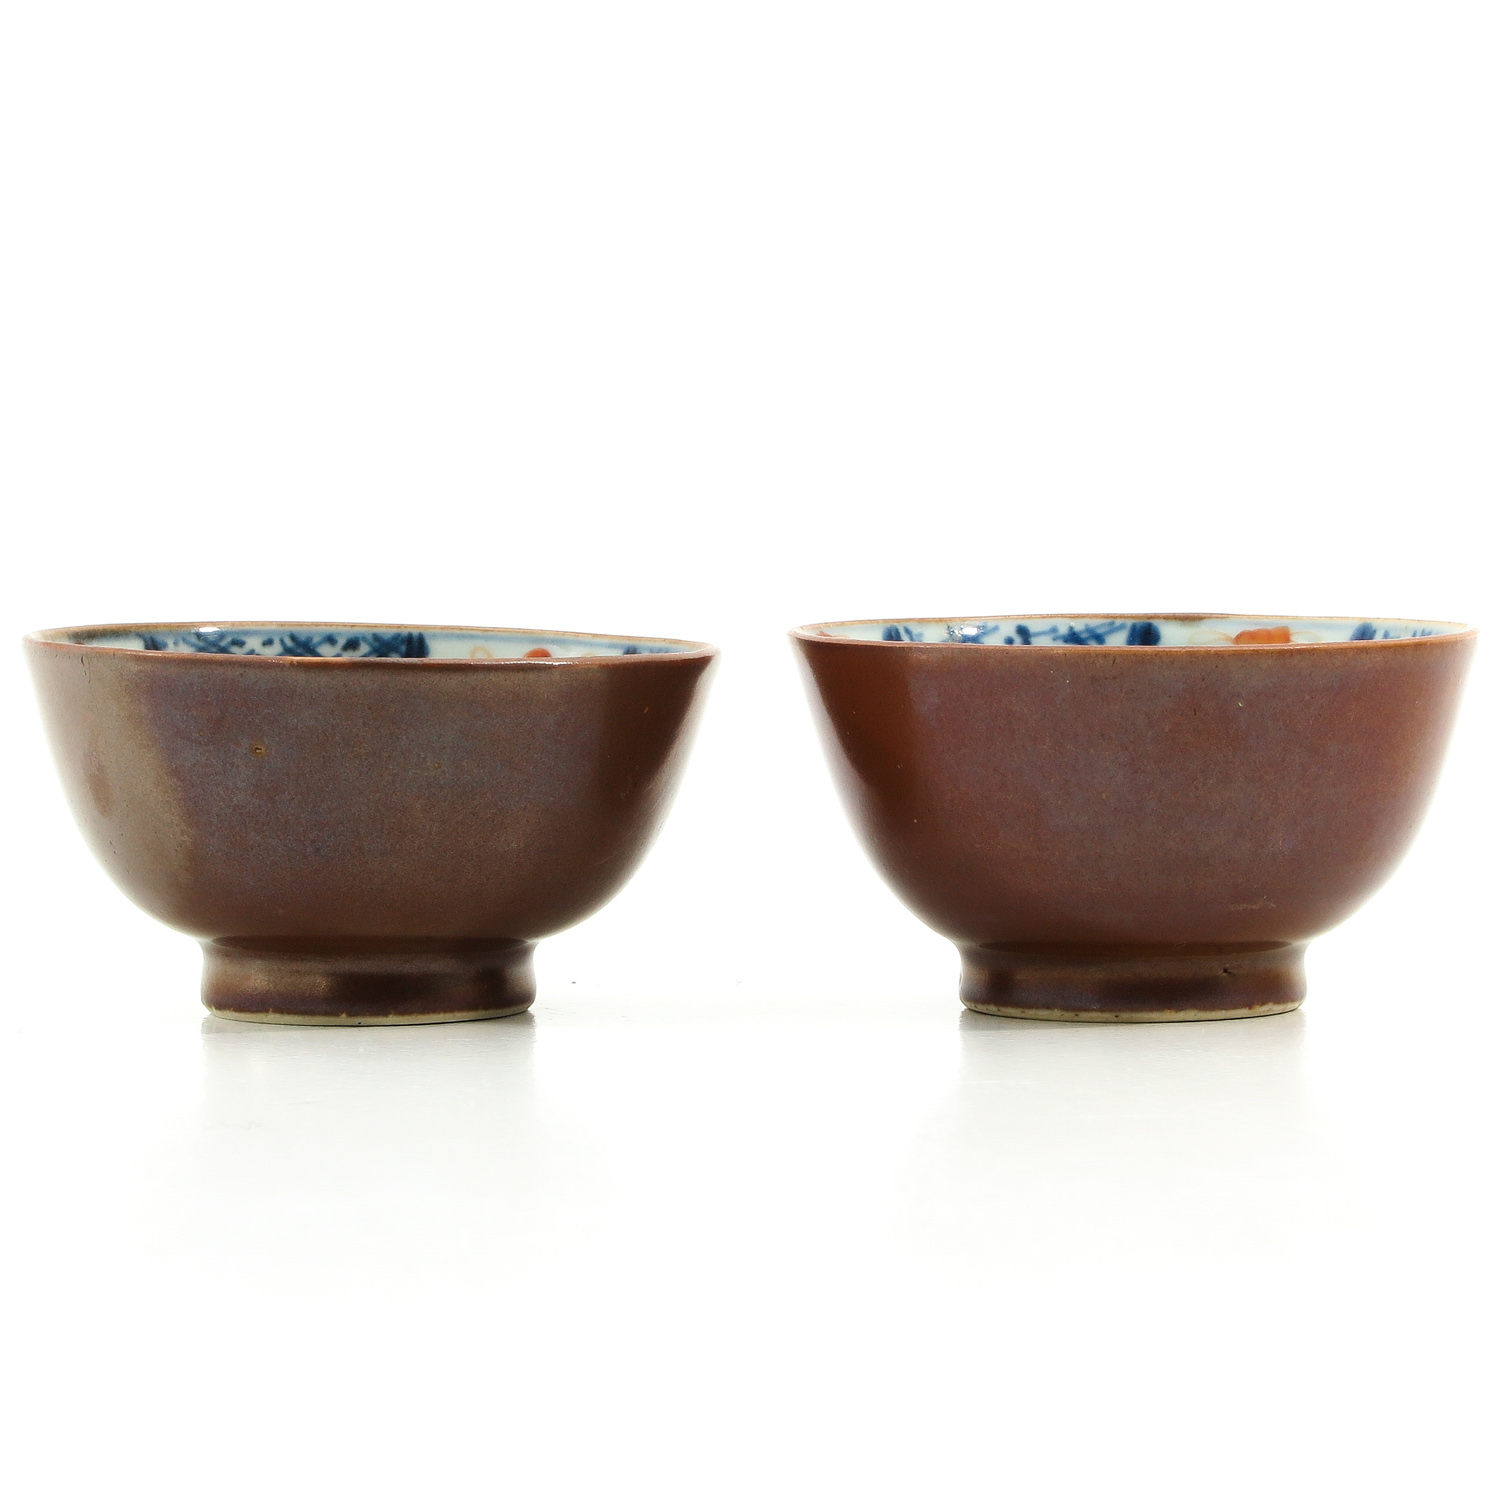 A Pair of Batavianware Cups and Saucers - Image 3 of 9